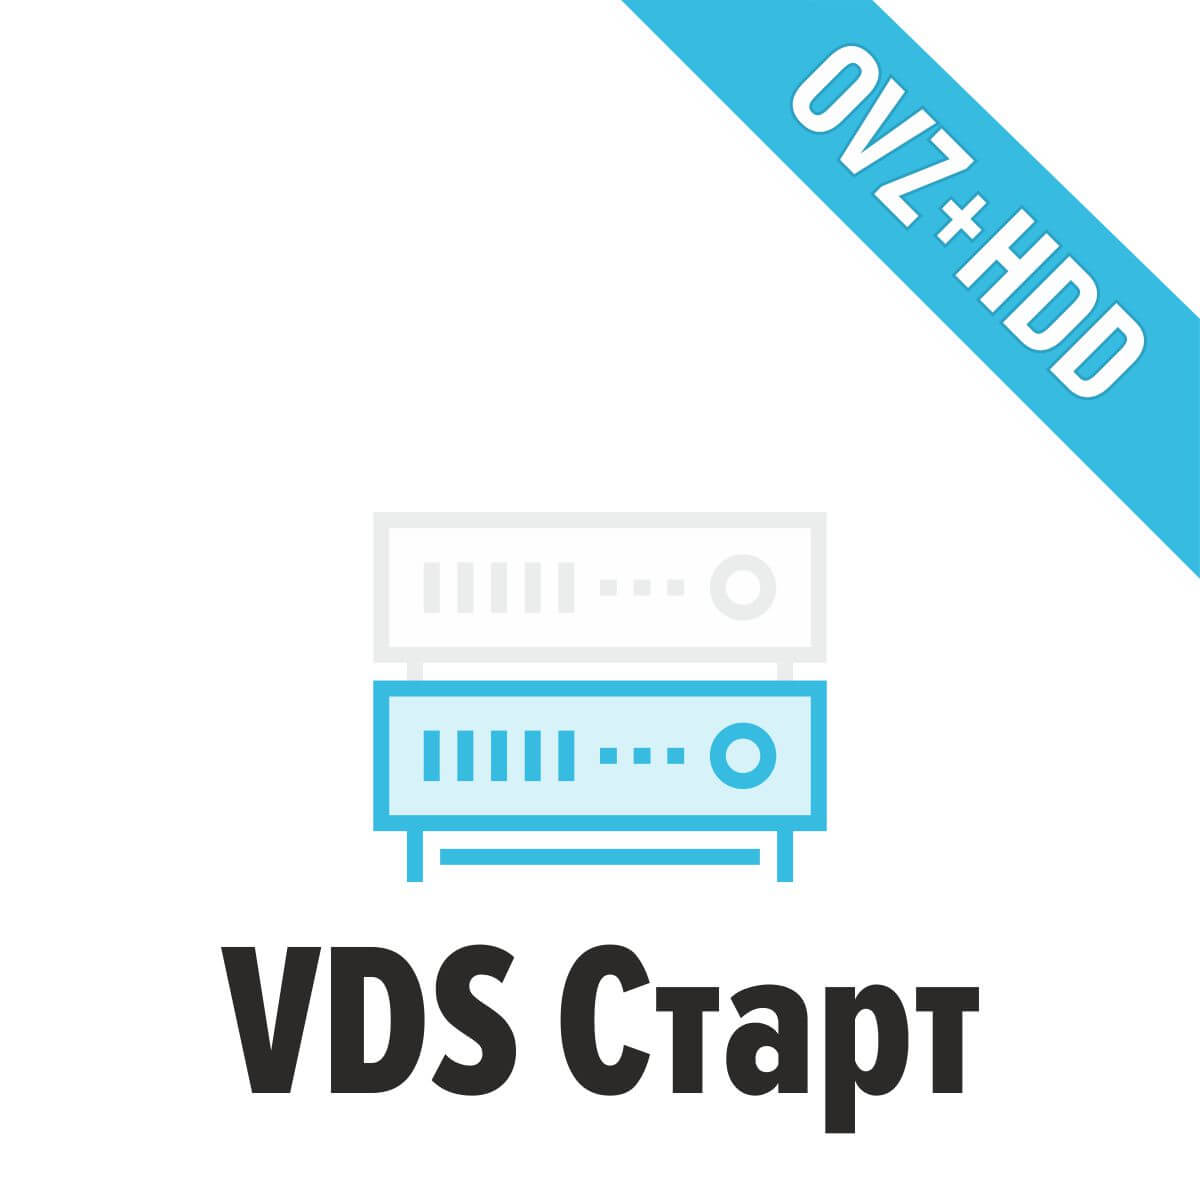 VDS Старт (OpenVZ, HDD+SSD, 1 Core, 1Gb RAM, 30Gb HDD)